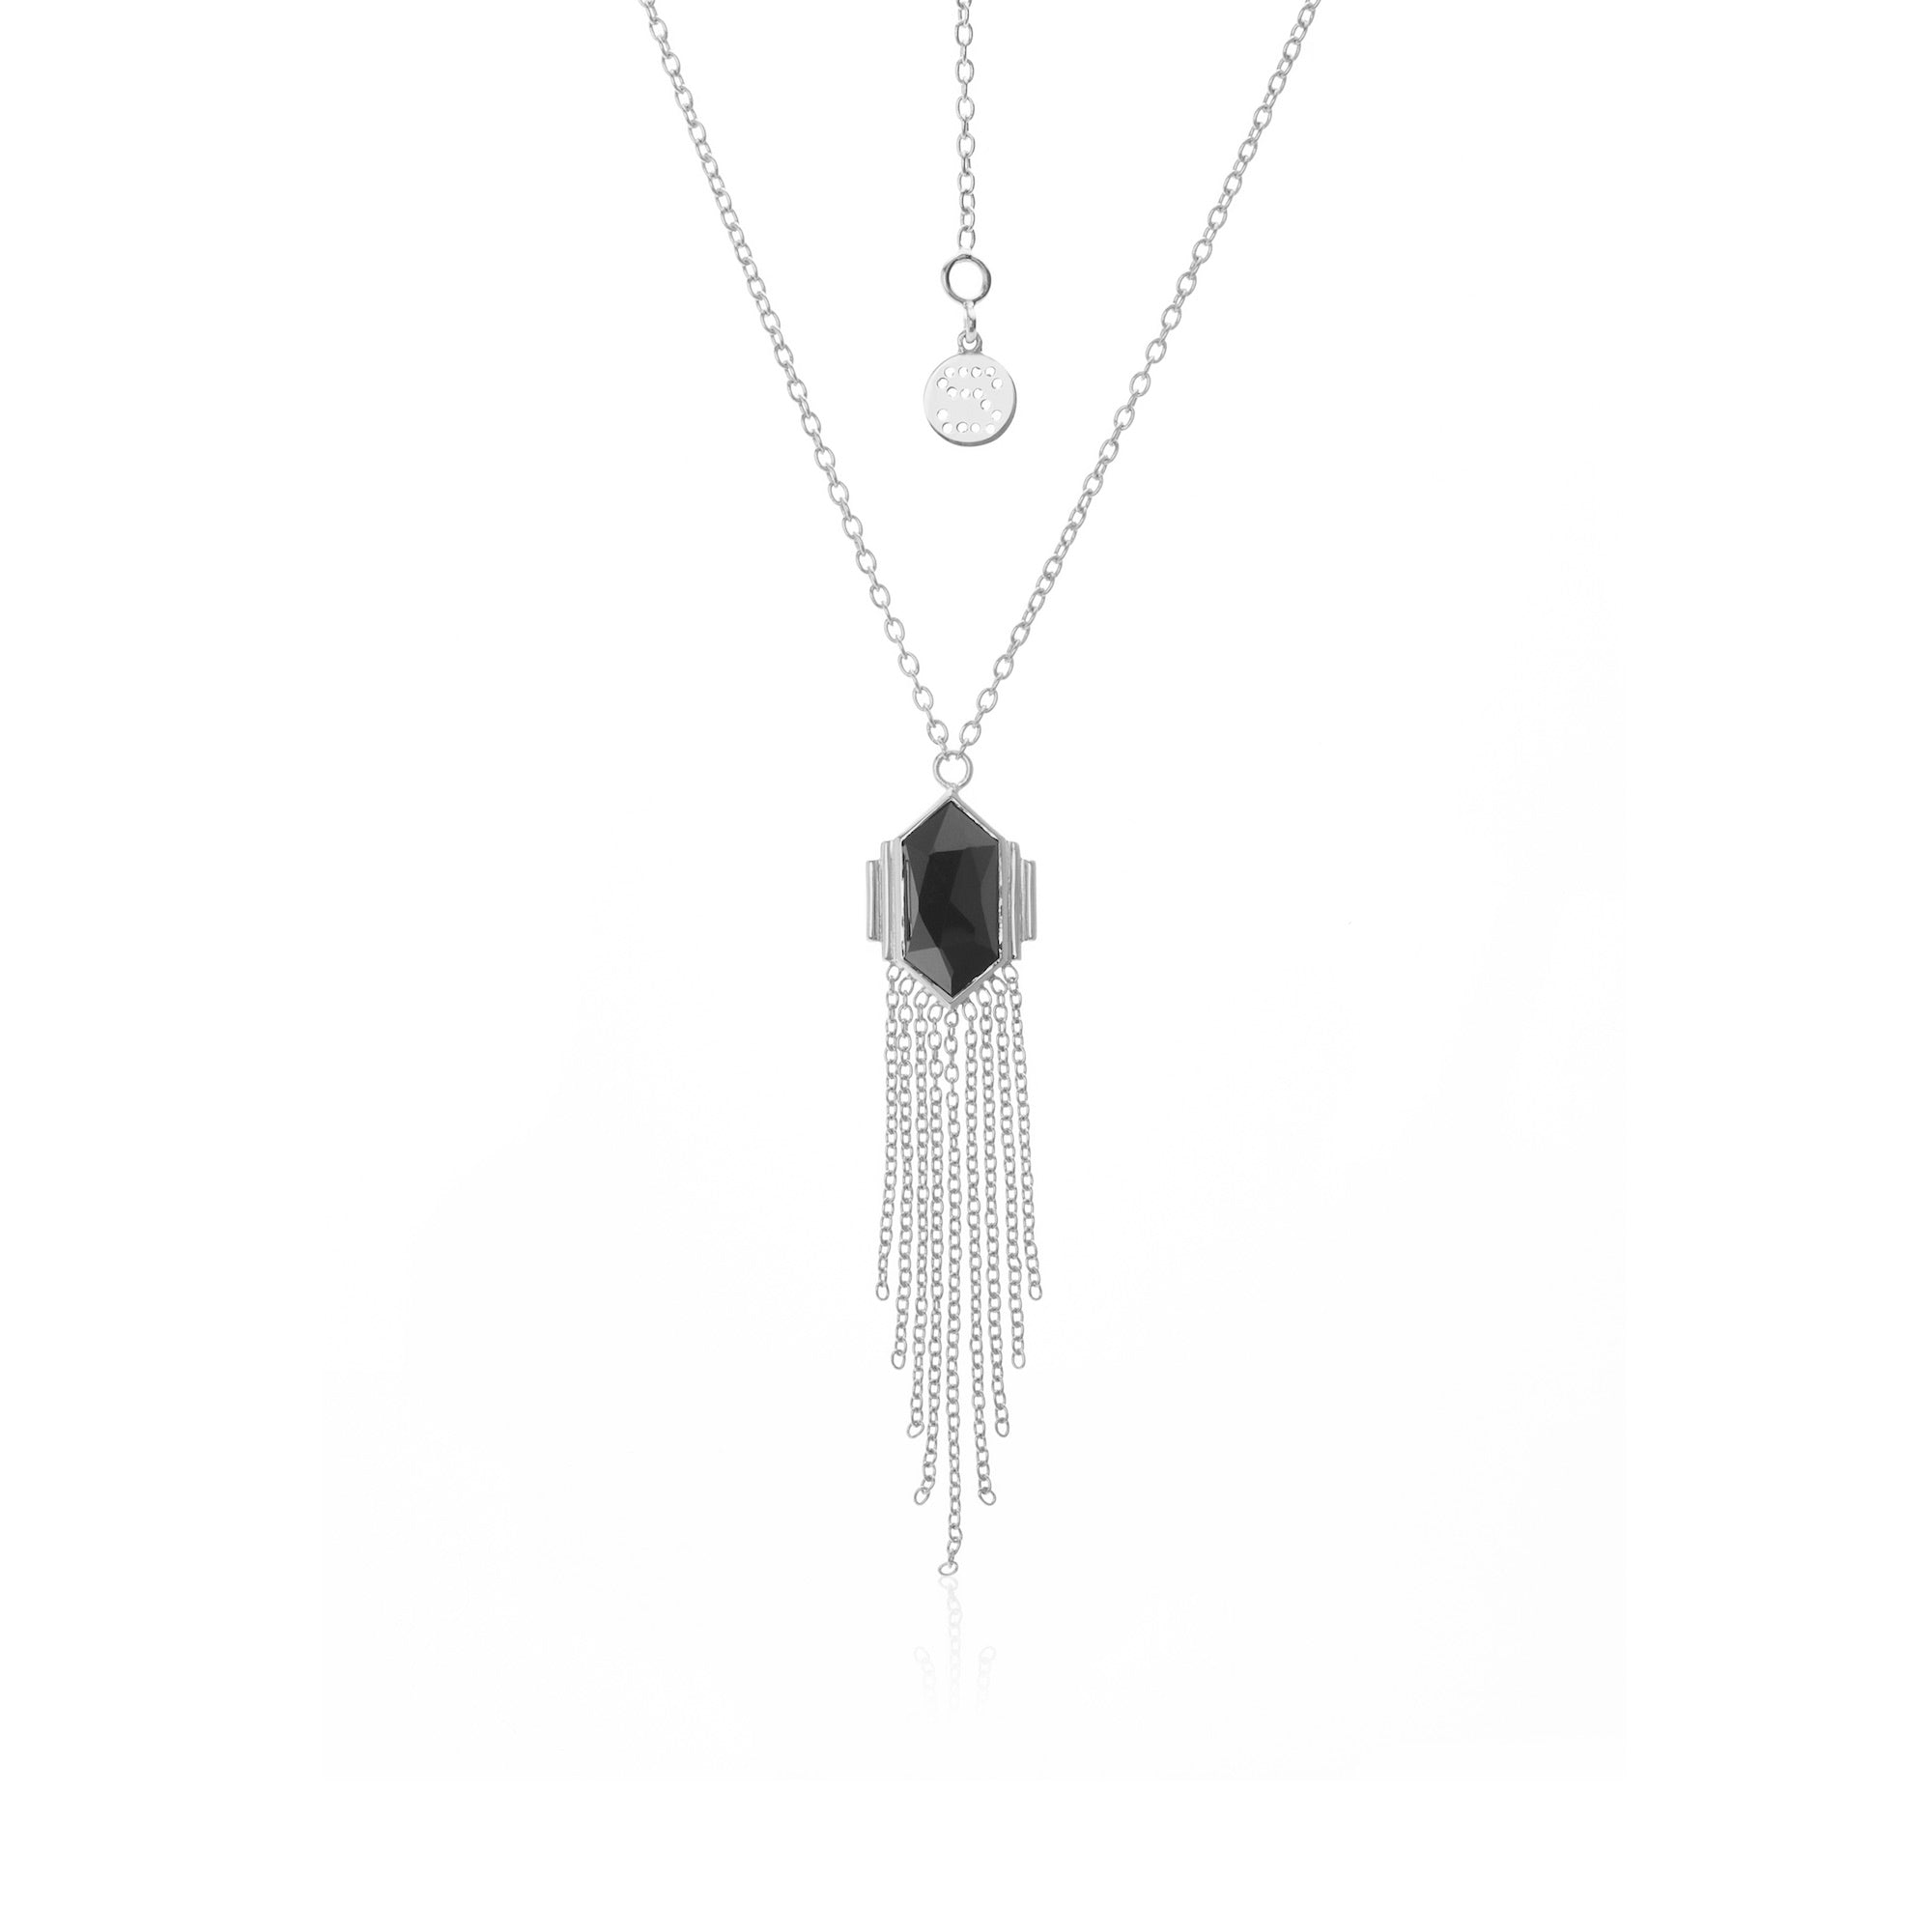 Silk & Steel Jewellery Glamour Fringe Necklace Black Spinel Silver